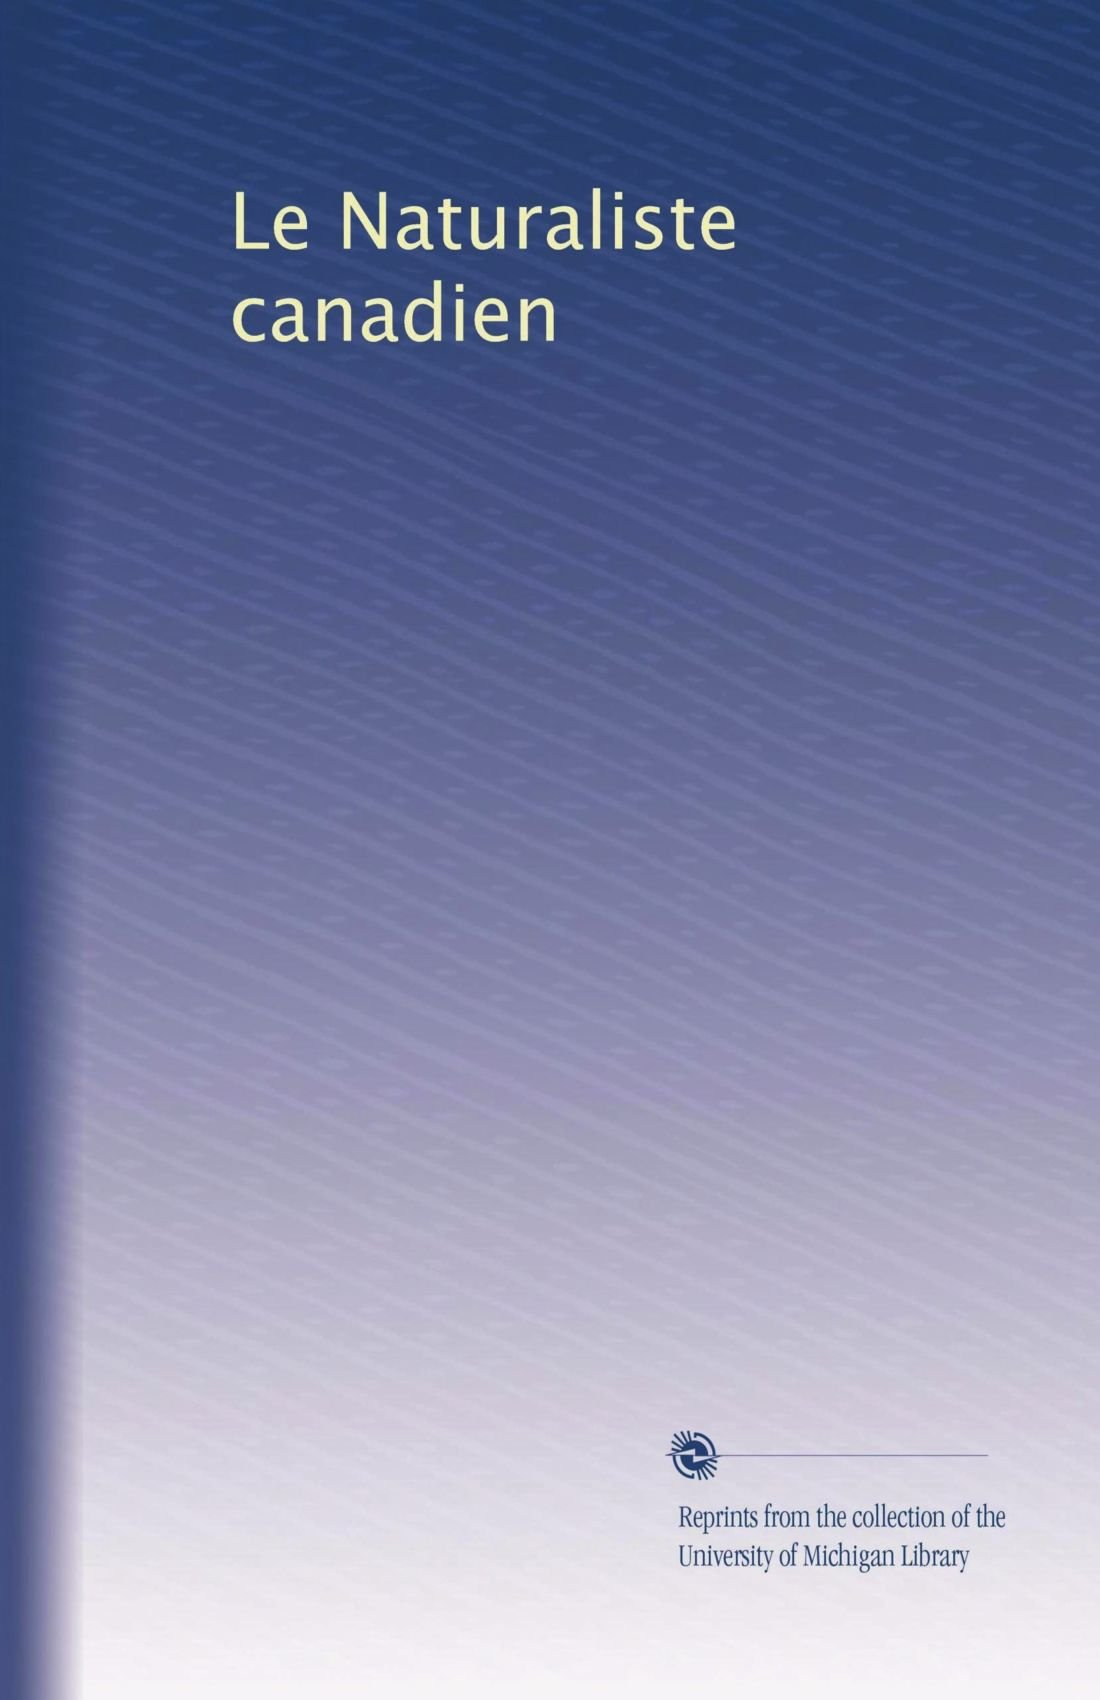 Le Naturaliste canadien (French Edition) ebook